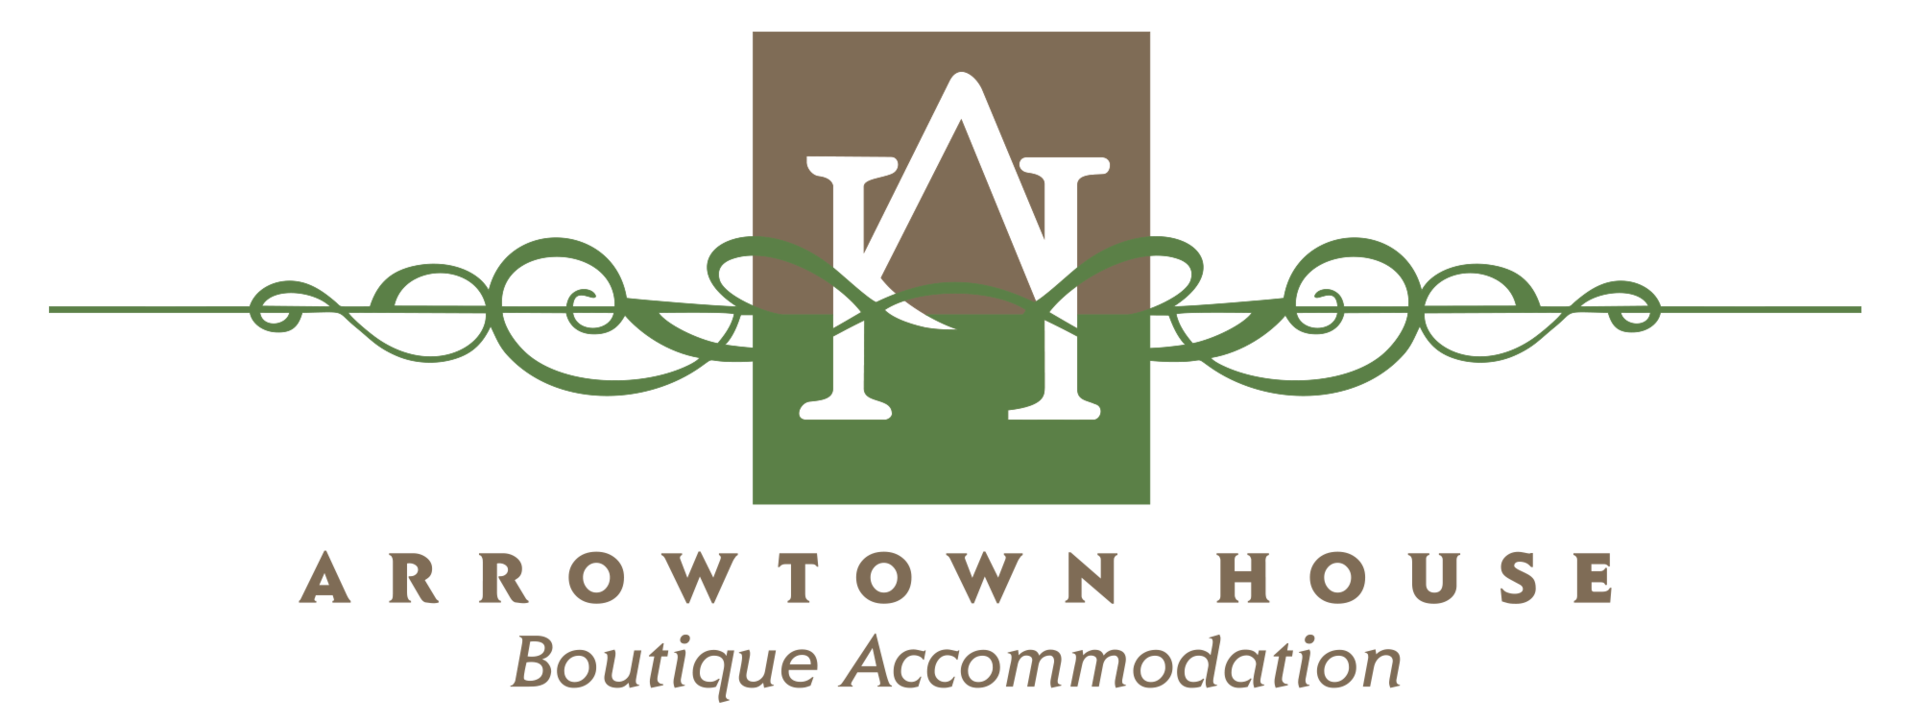 ArrowtownHouse-logo-transparentBackground.png